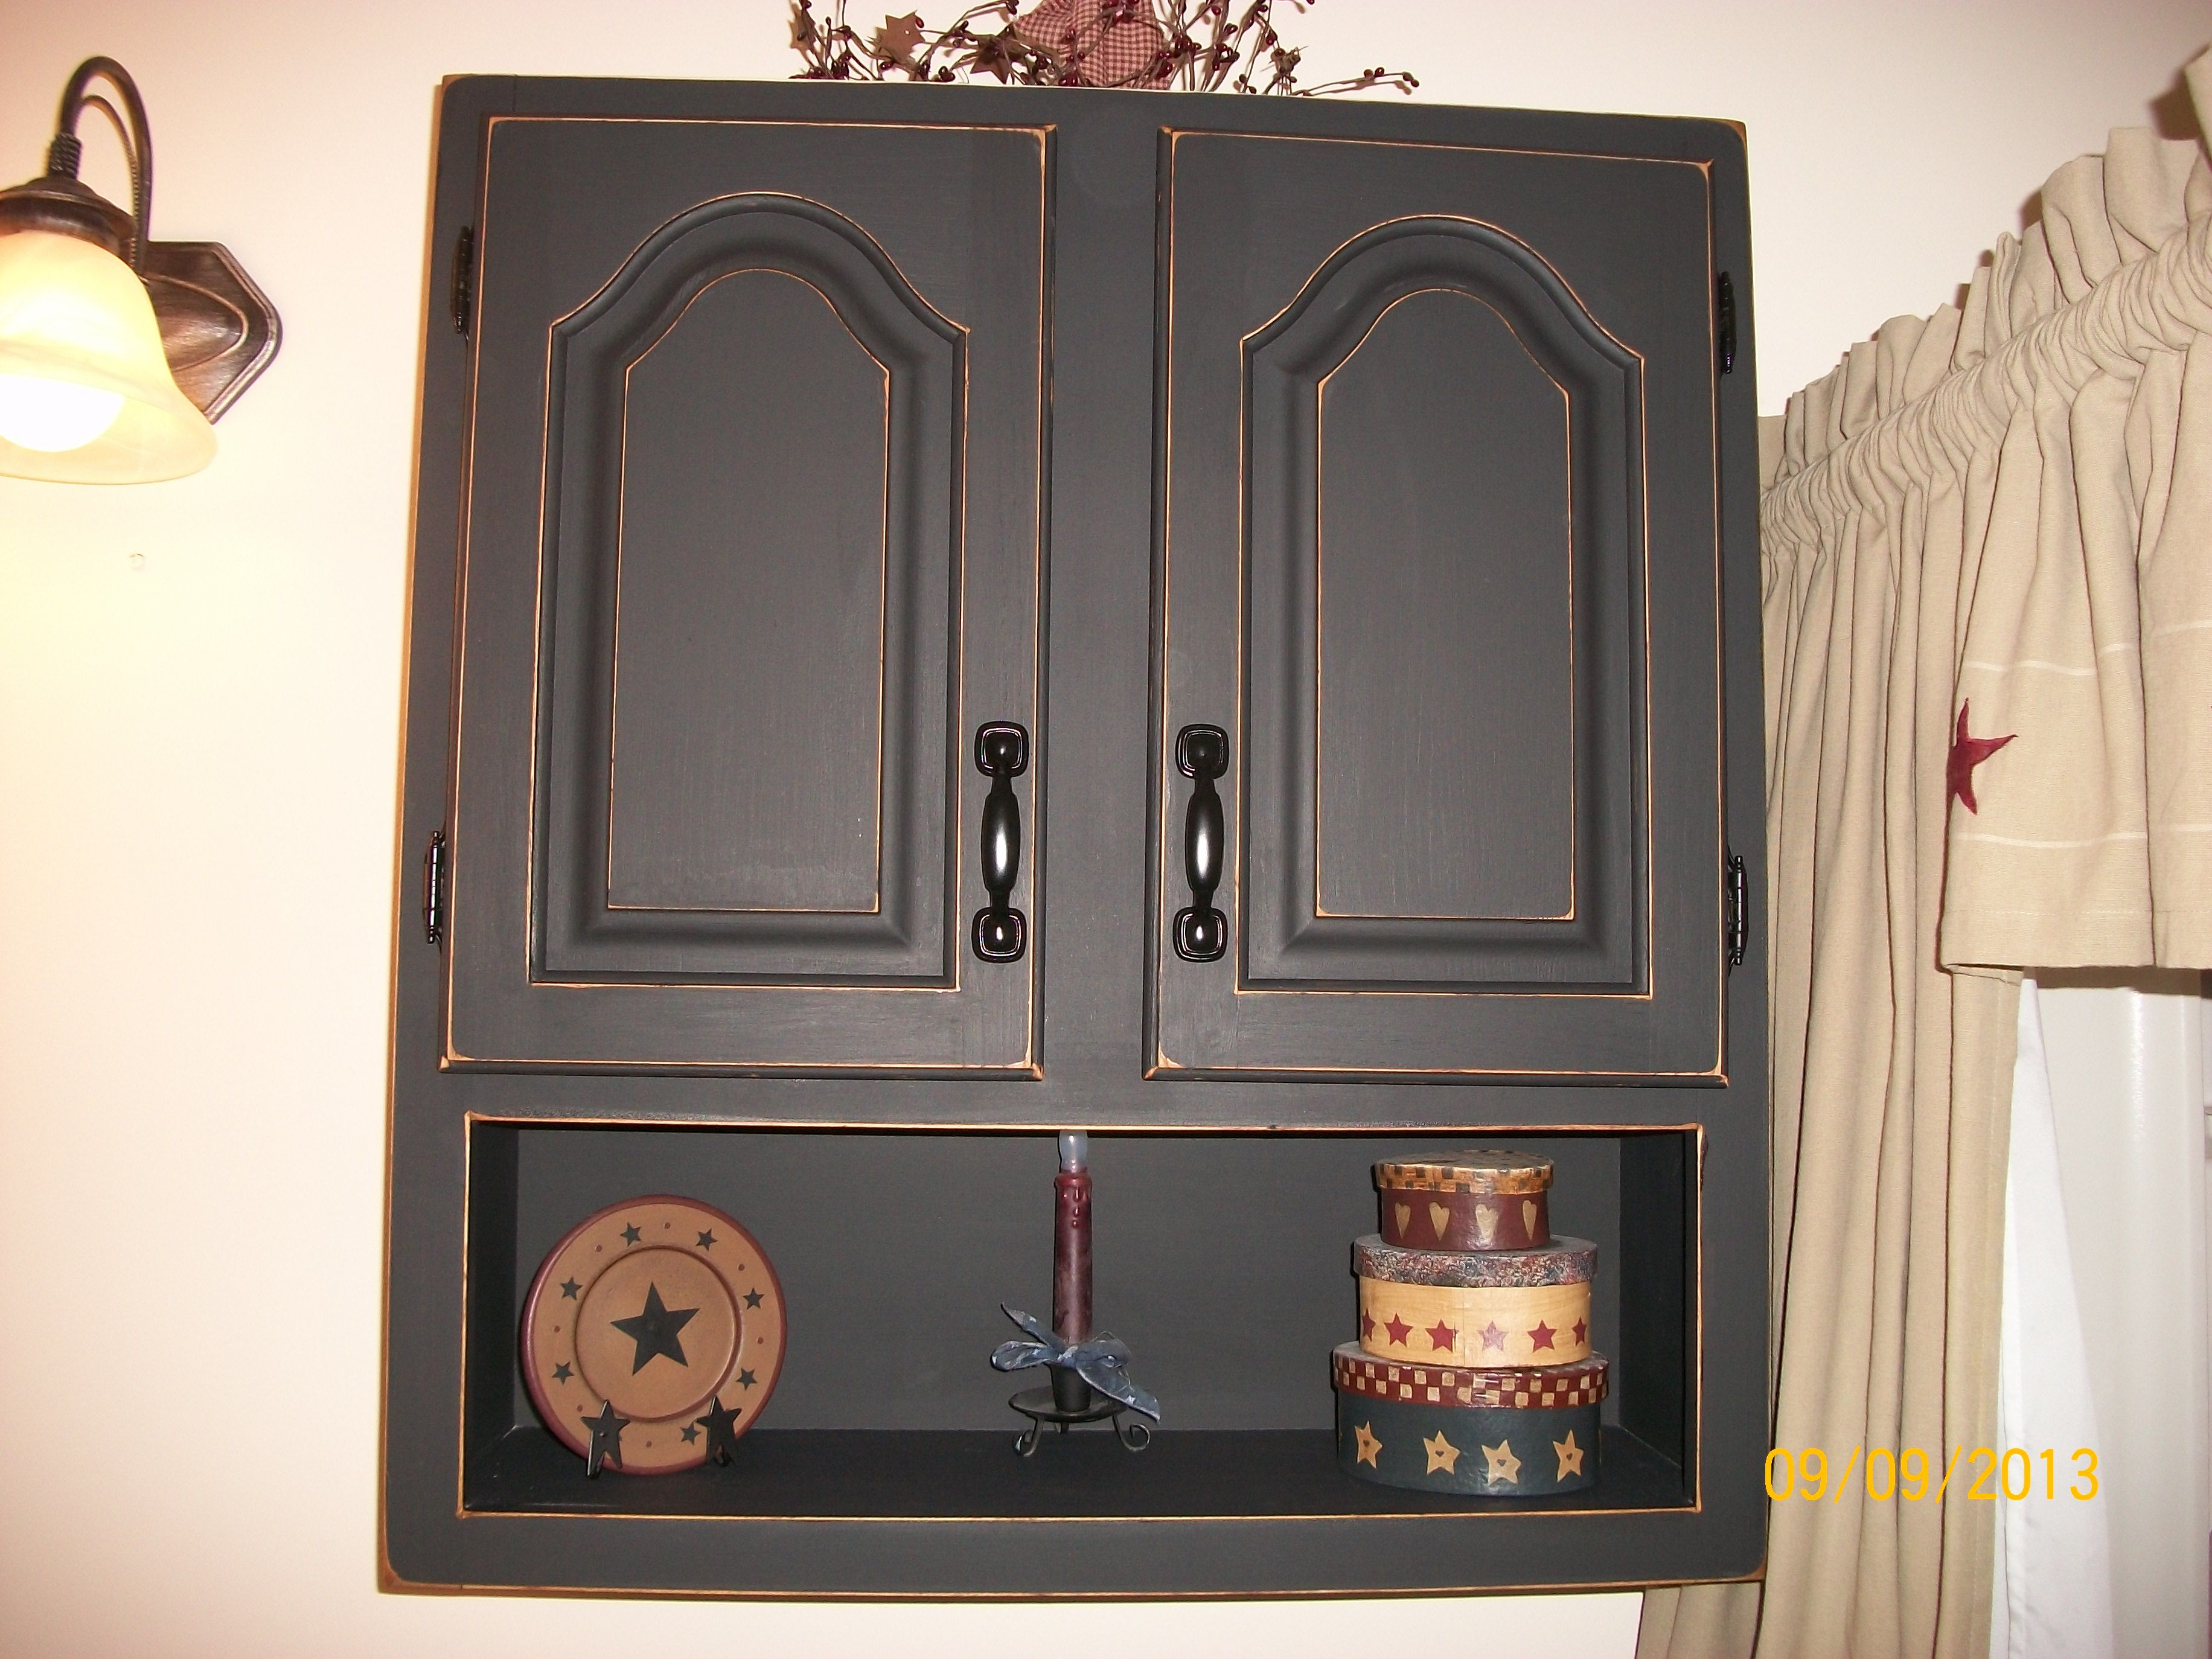 Finished Bathroom Wall Cabinet With Black Chalkboard Paint Then Stunning Bathroom Wall Cabinet Design Decoration